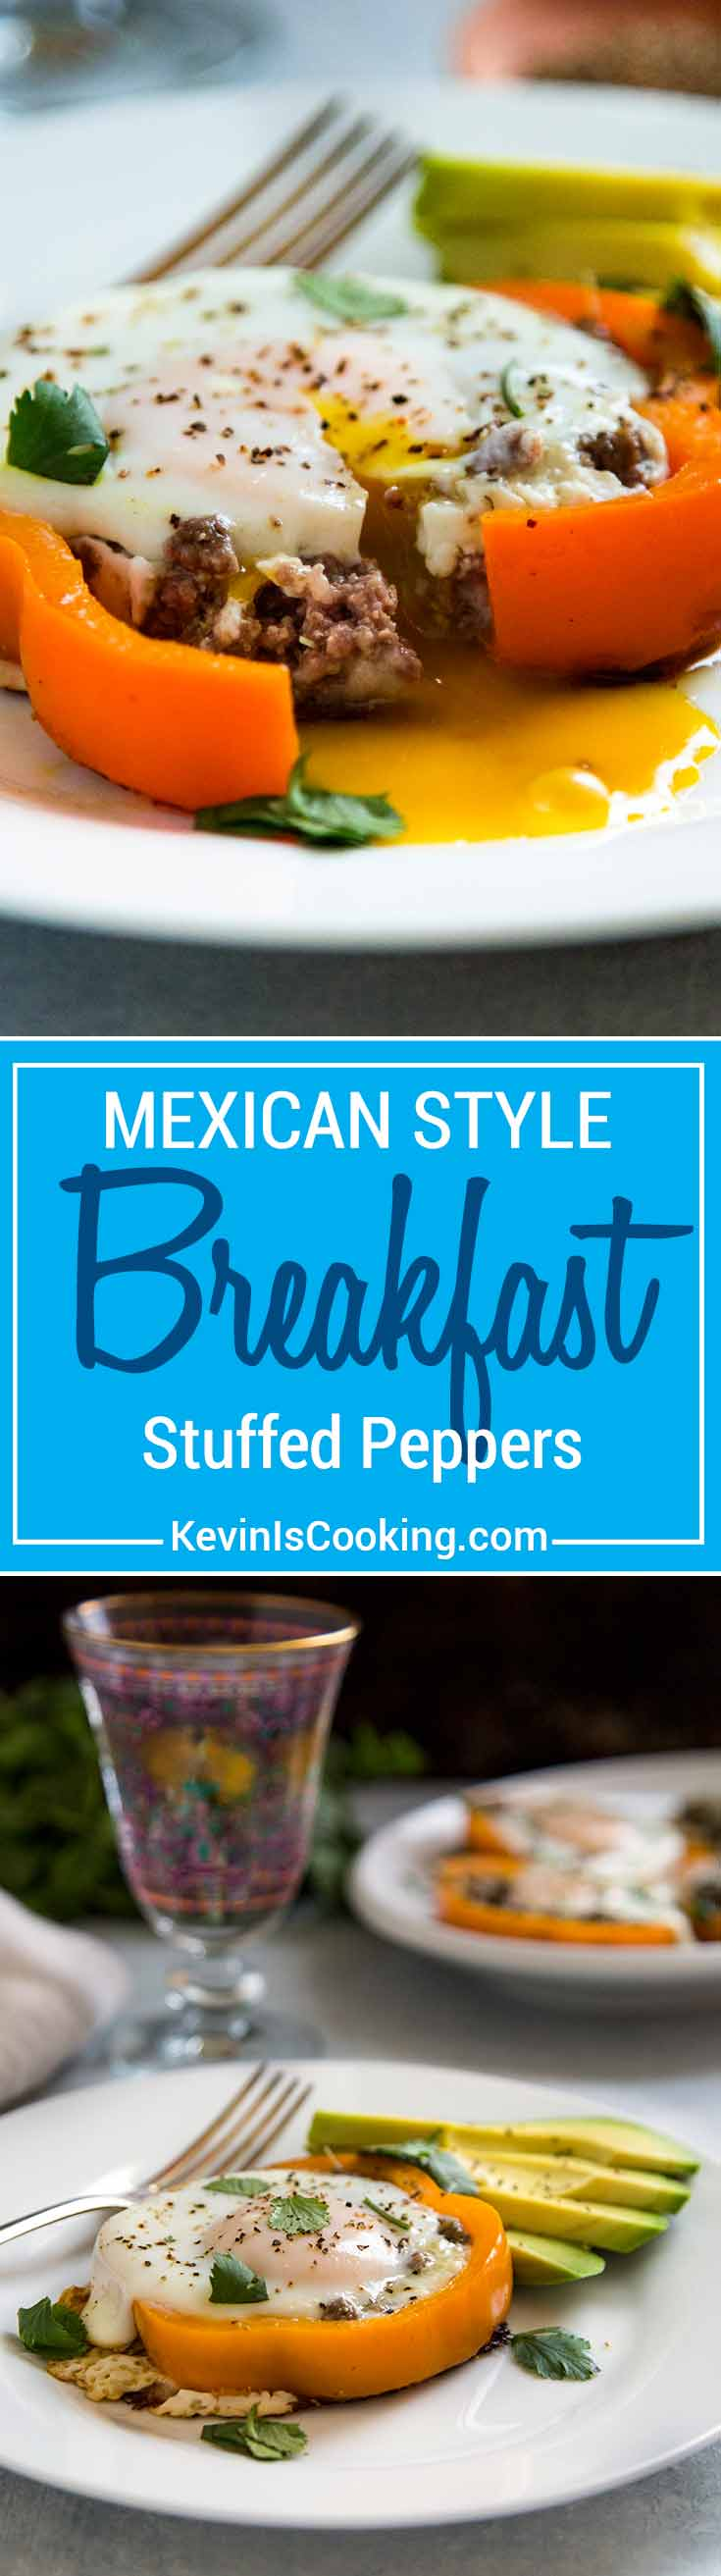 These Breakfast Stuffed Peppers have beef, salsa, cheese and a beautiful egg to top off one hearty and delicious breakfast. You need this one, and making a batch for the family is easy!